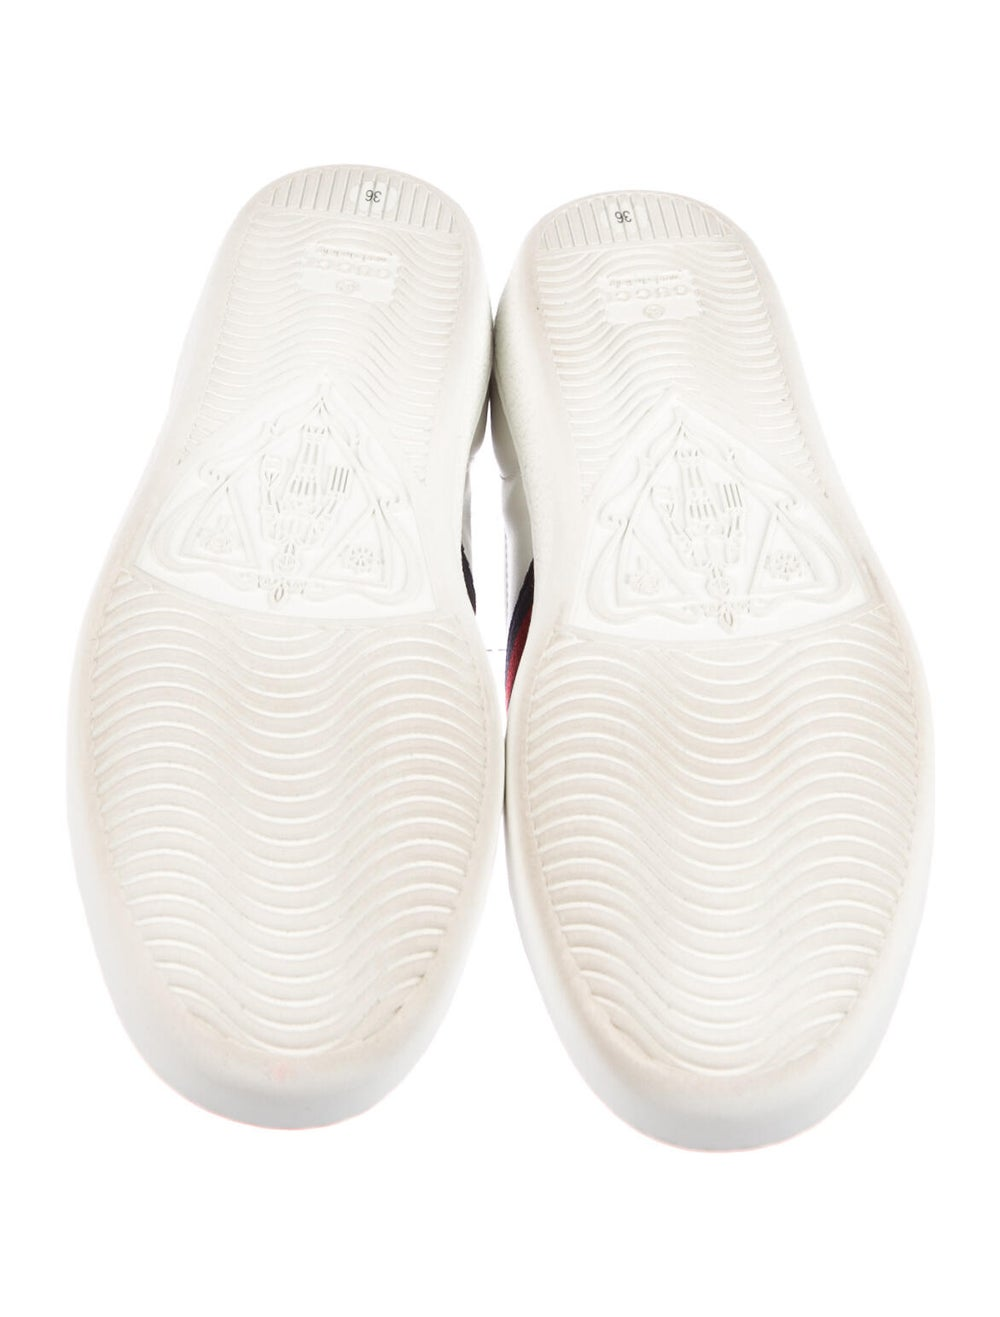 Gucci Sylvie Web Accent Leather Sneakers White - image 5